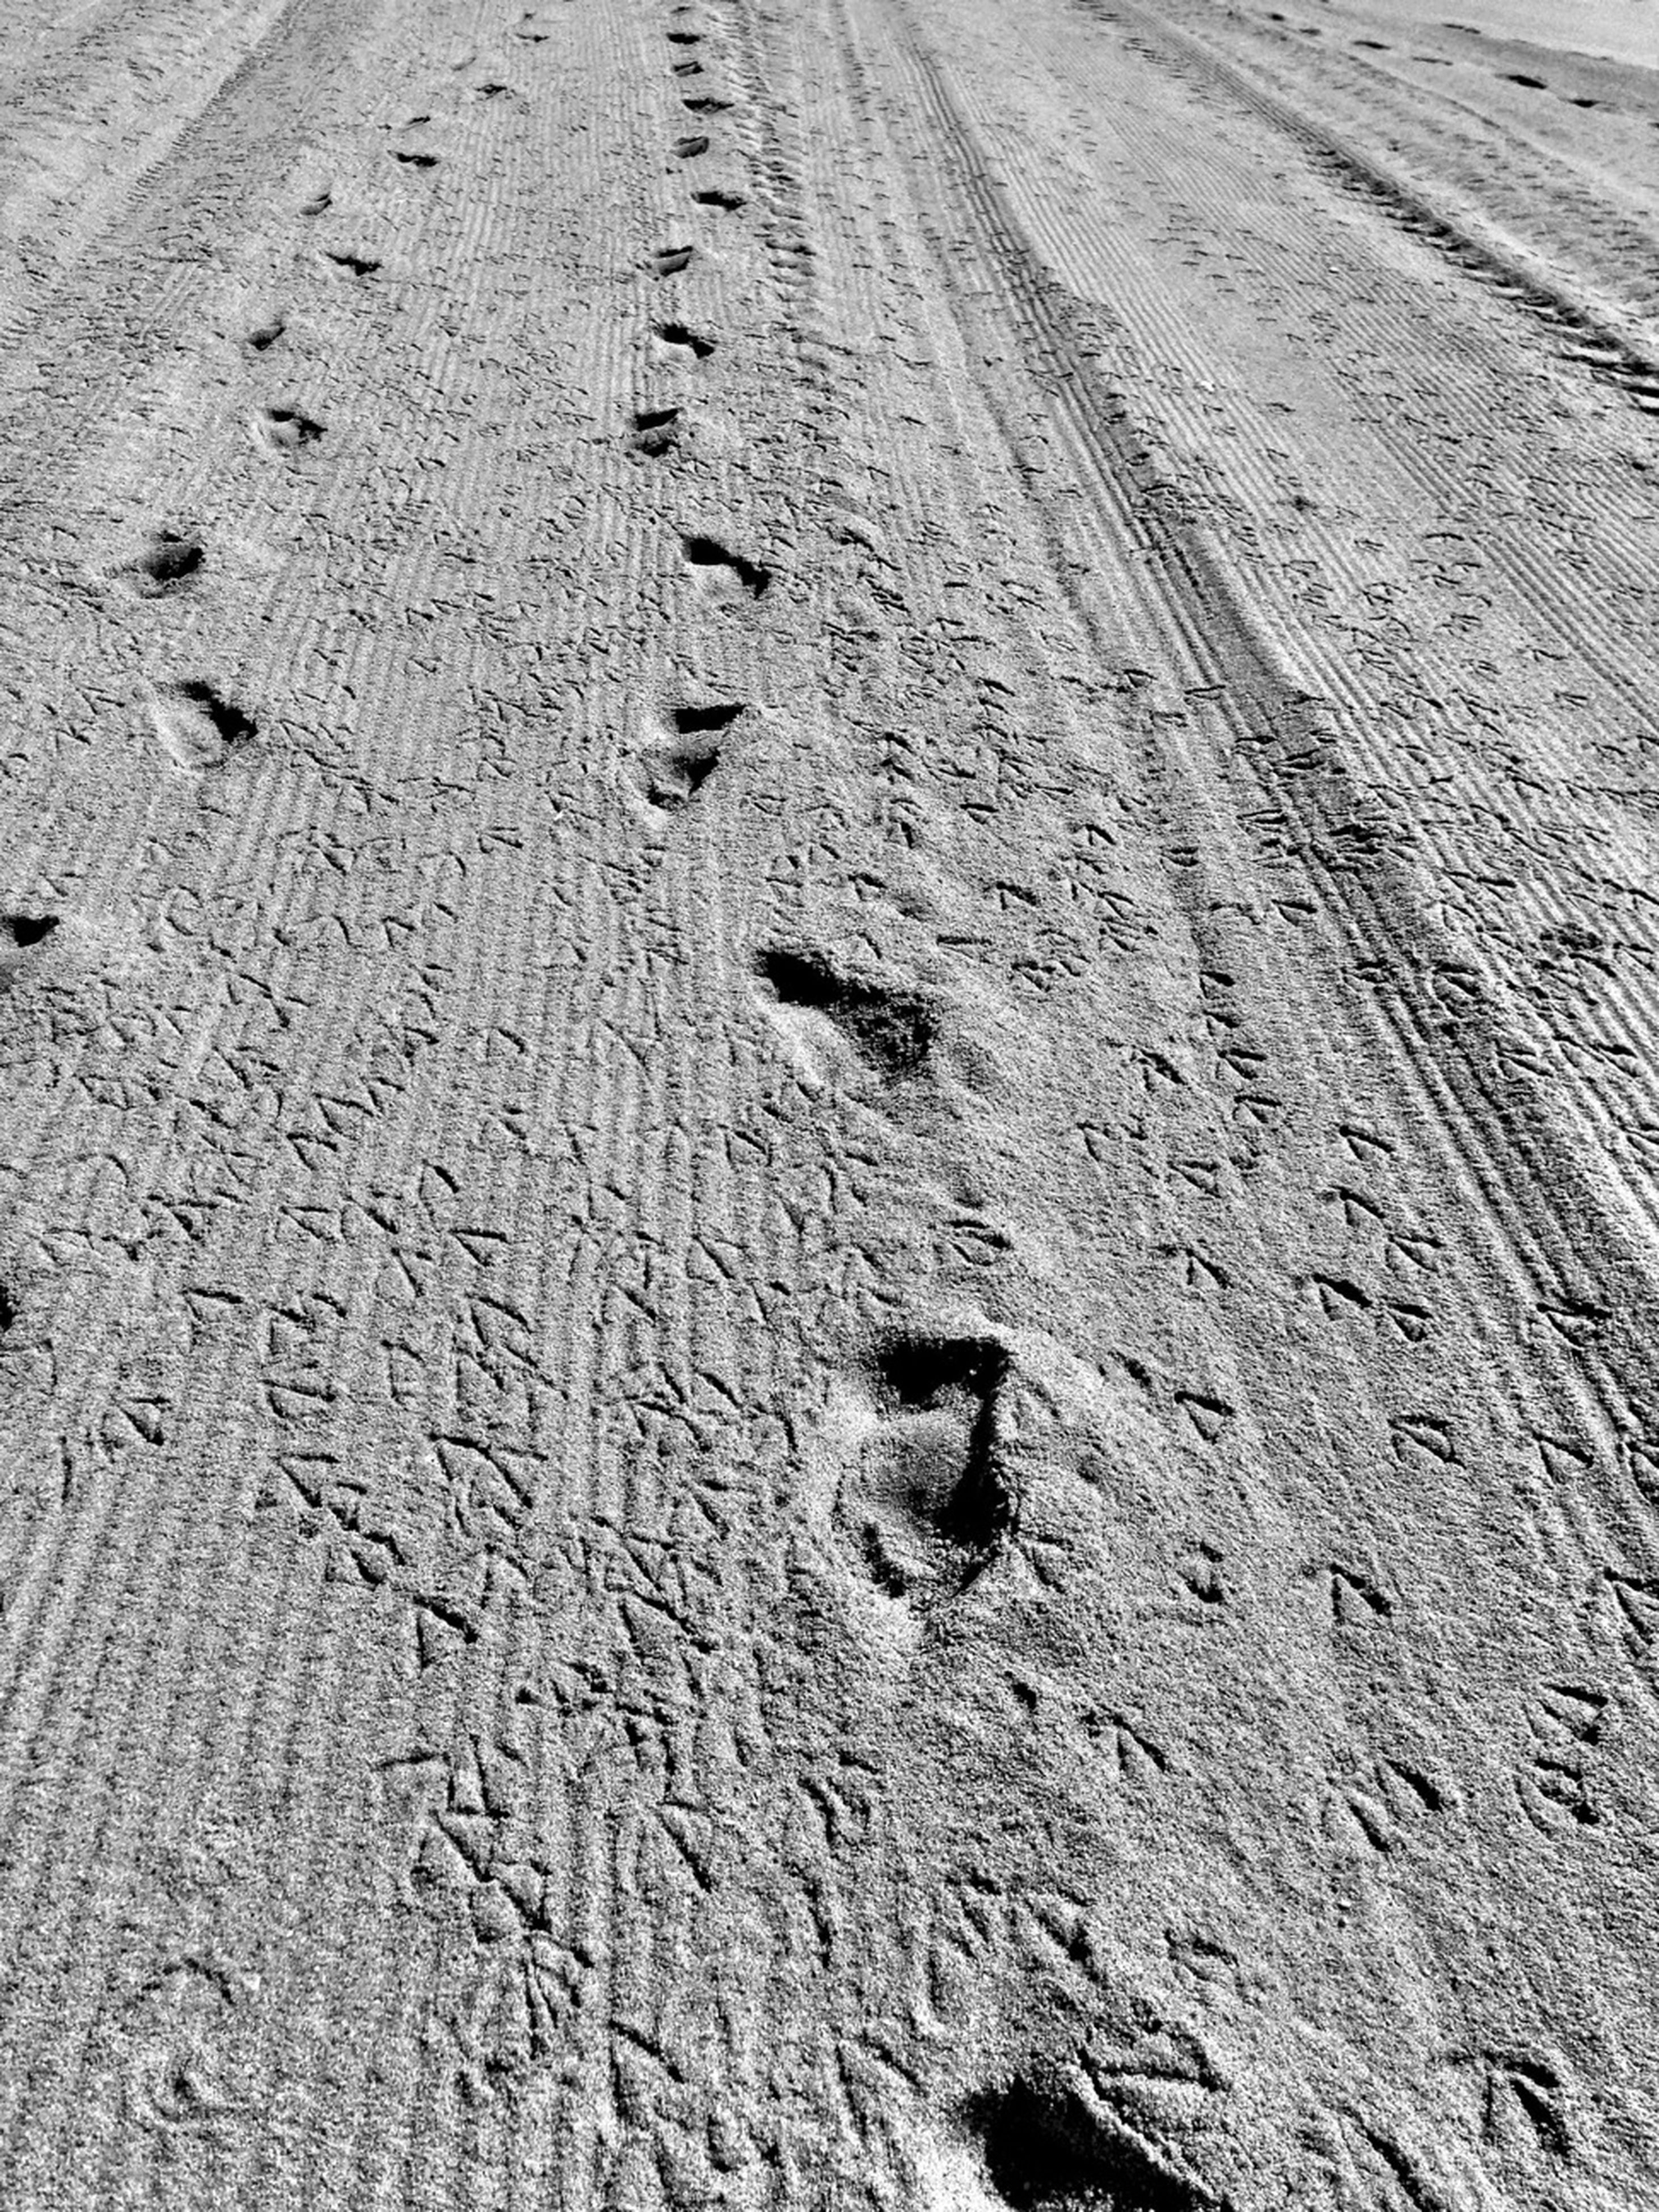 footprint, sand, the way forward, high angle view, road, tire track, asphalt, nature, street, diminishing perspective, tranquility, surface level, day, sunlight, beach, outdoors, snow, vanishing point, transportation, no people